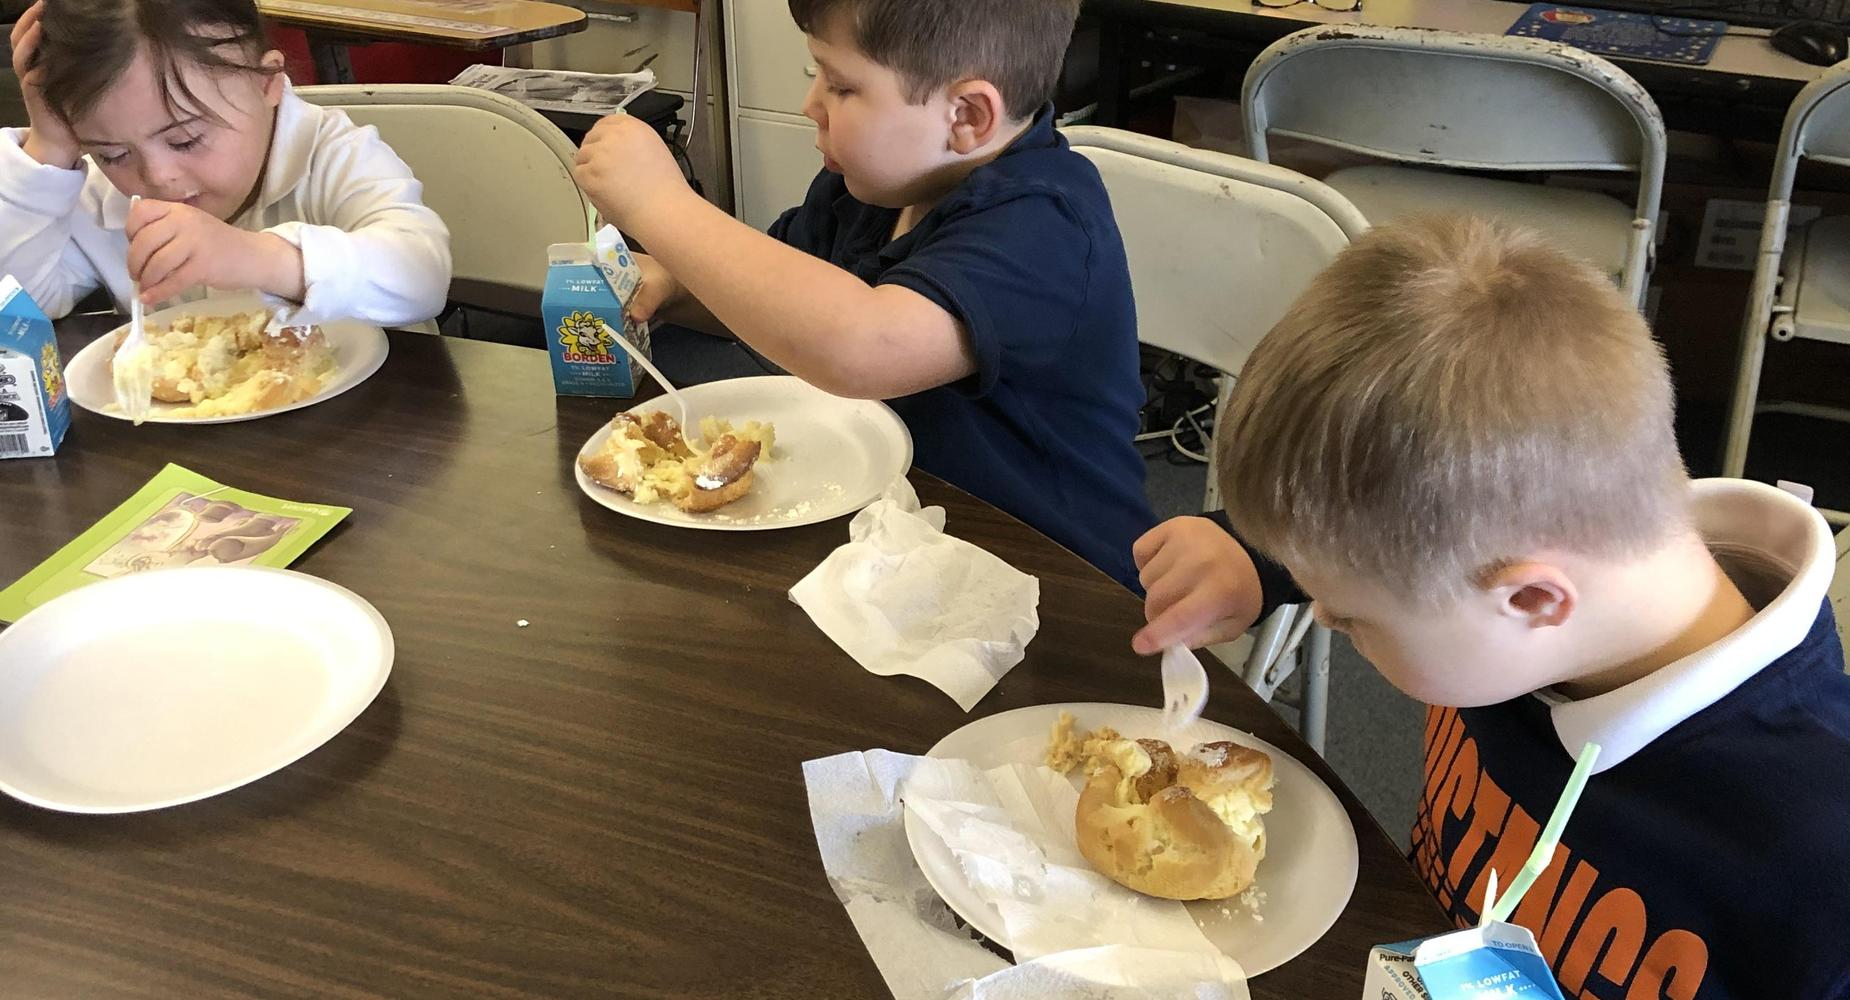 Students eating cream puffs